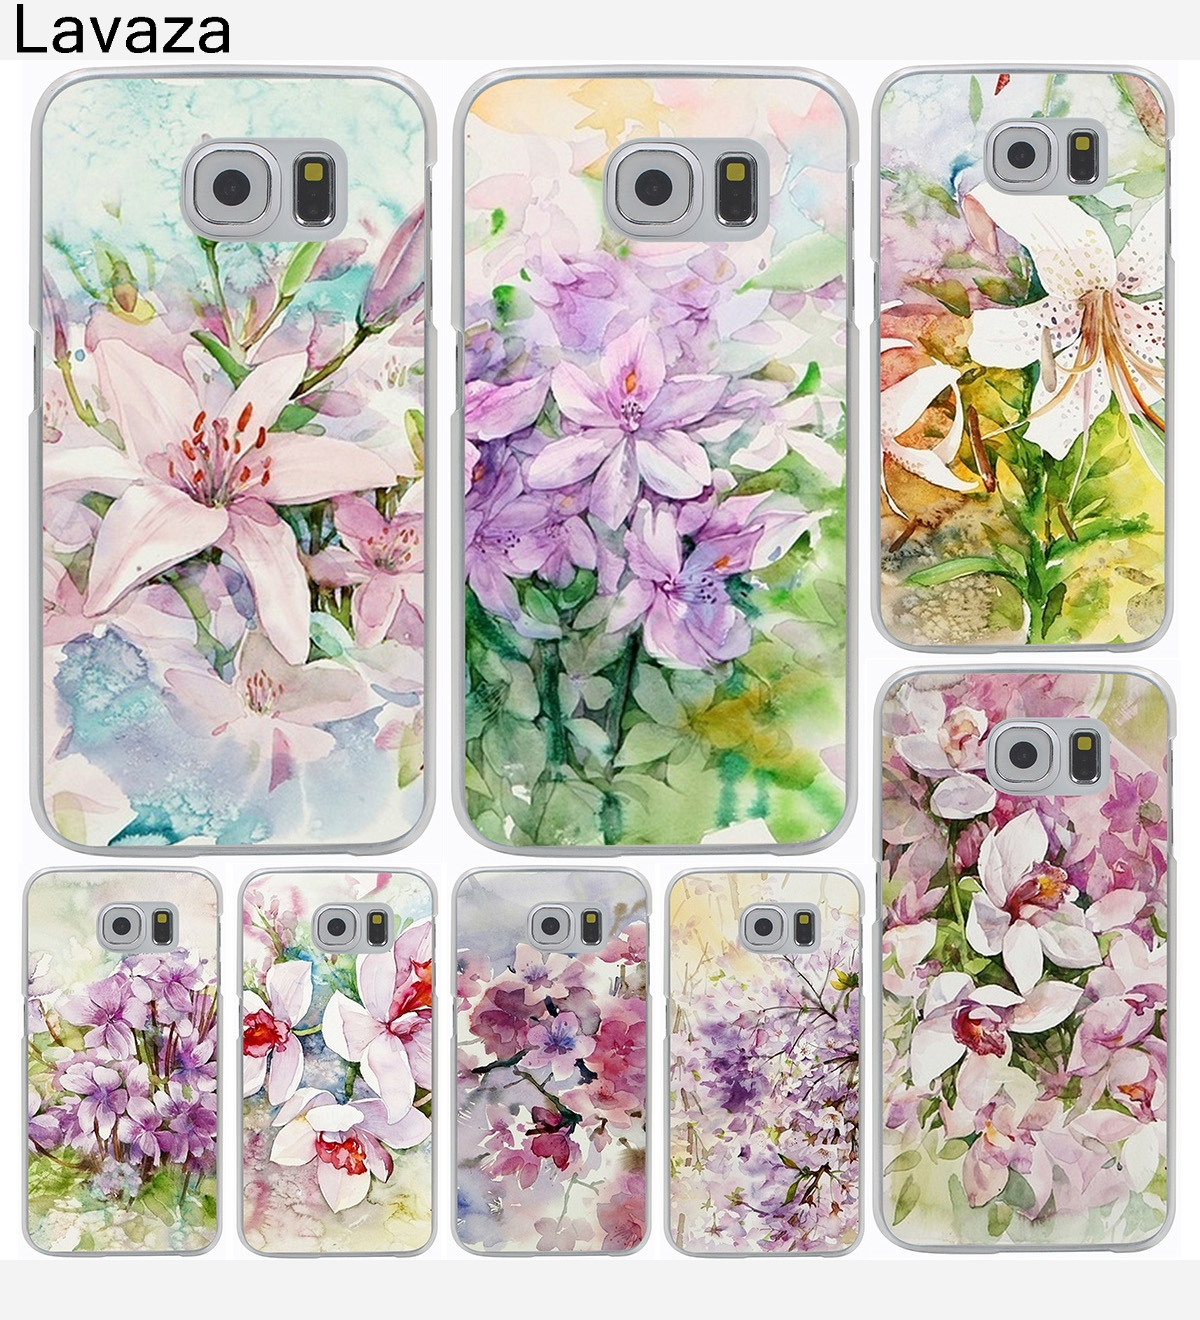 Flowers Daisy Plants Hard Cover Case for Galaxy S3 S4 S5 & Mini S6 S7 S8 Edge Plus